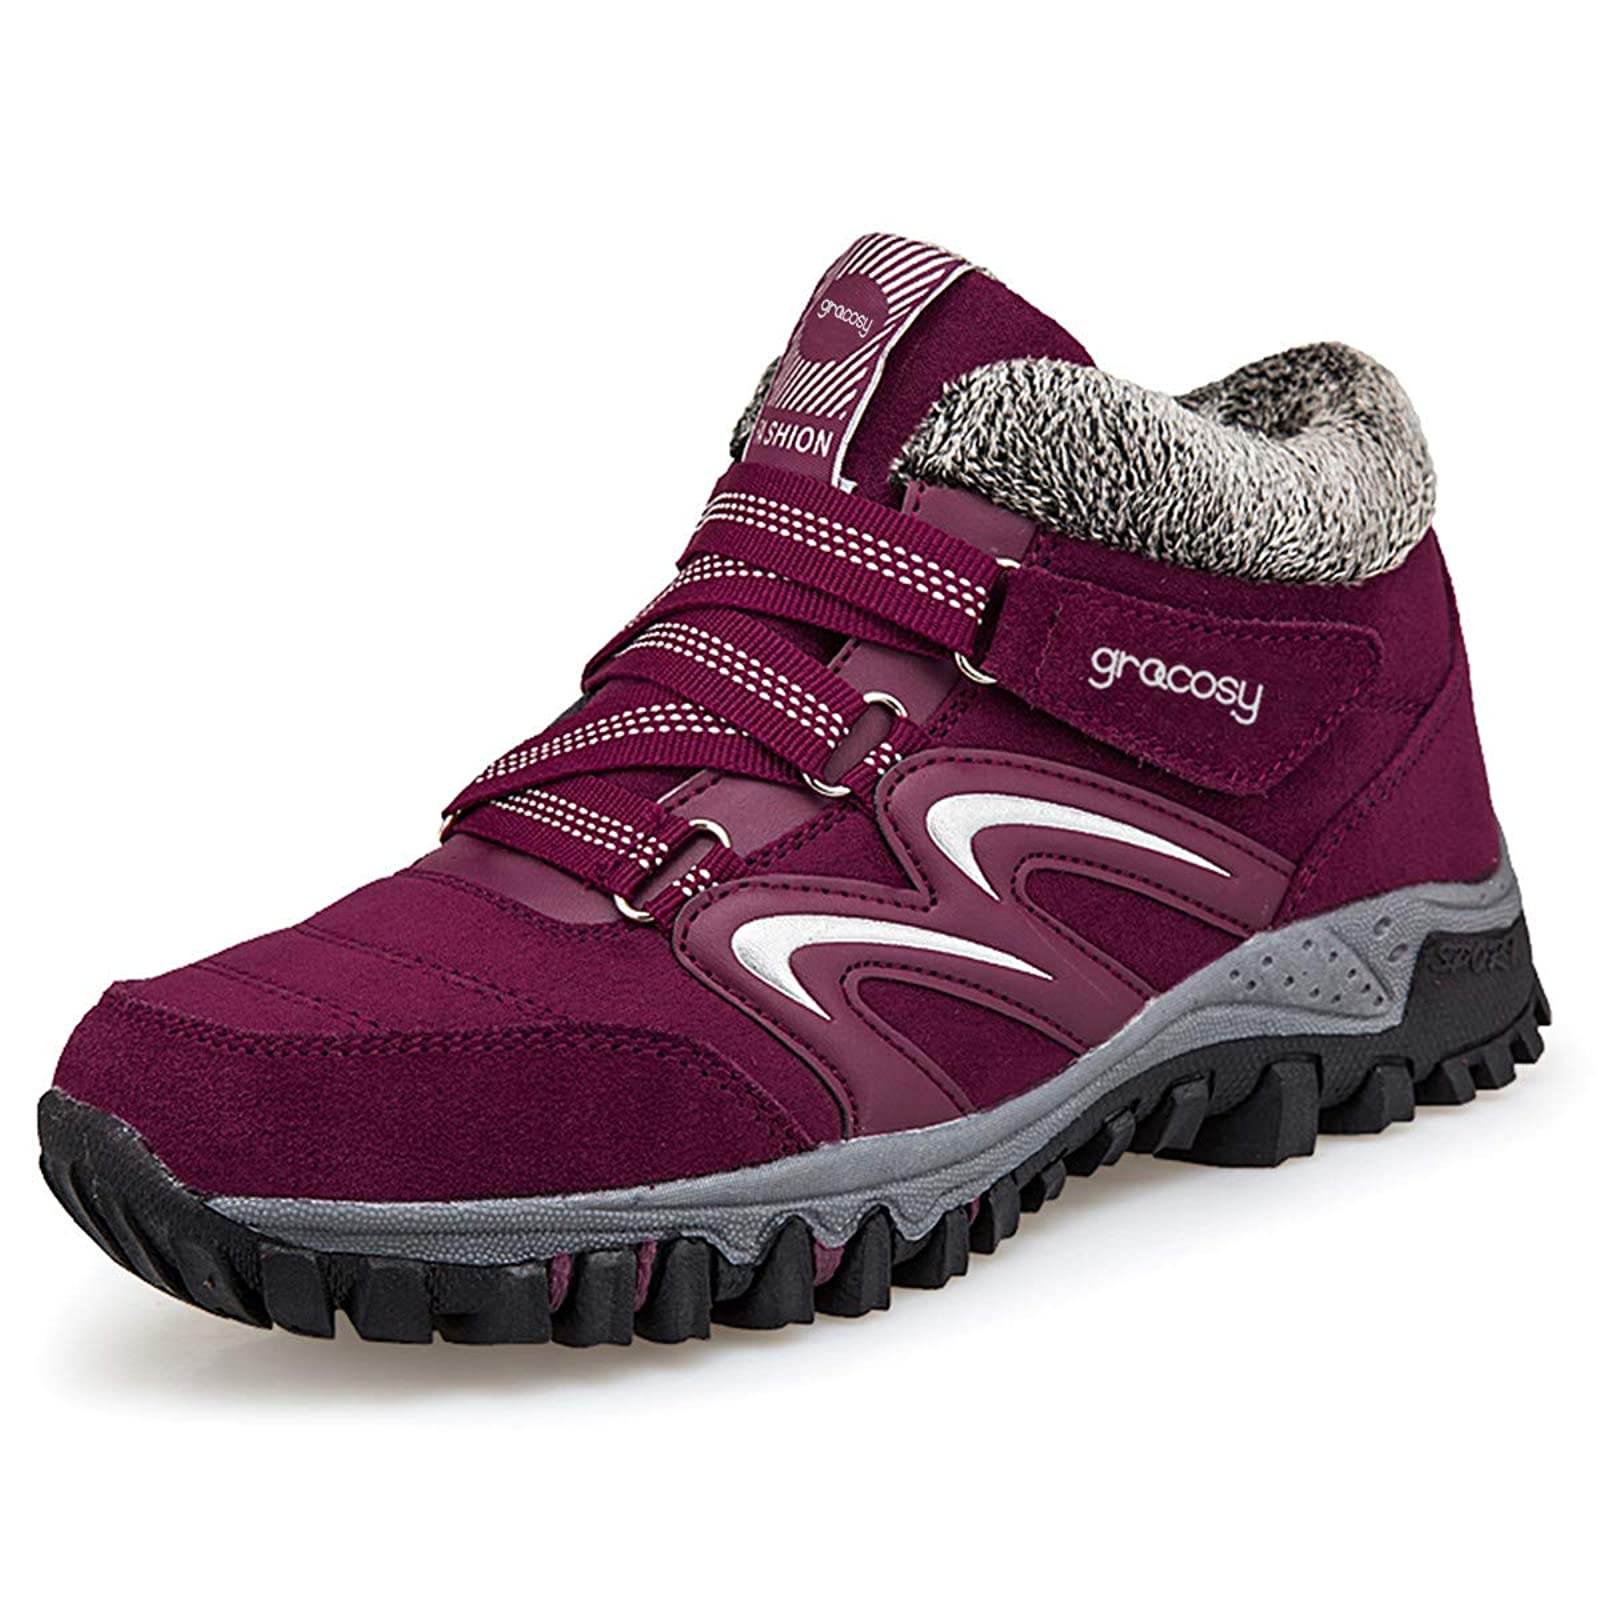 gracosy Women's Hiking Shoes High Top GRACOSYWERTY21416 - 3